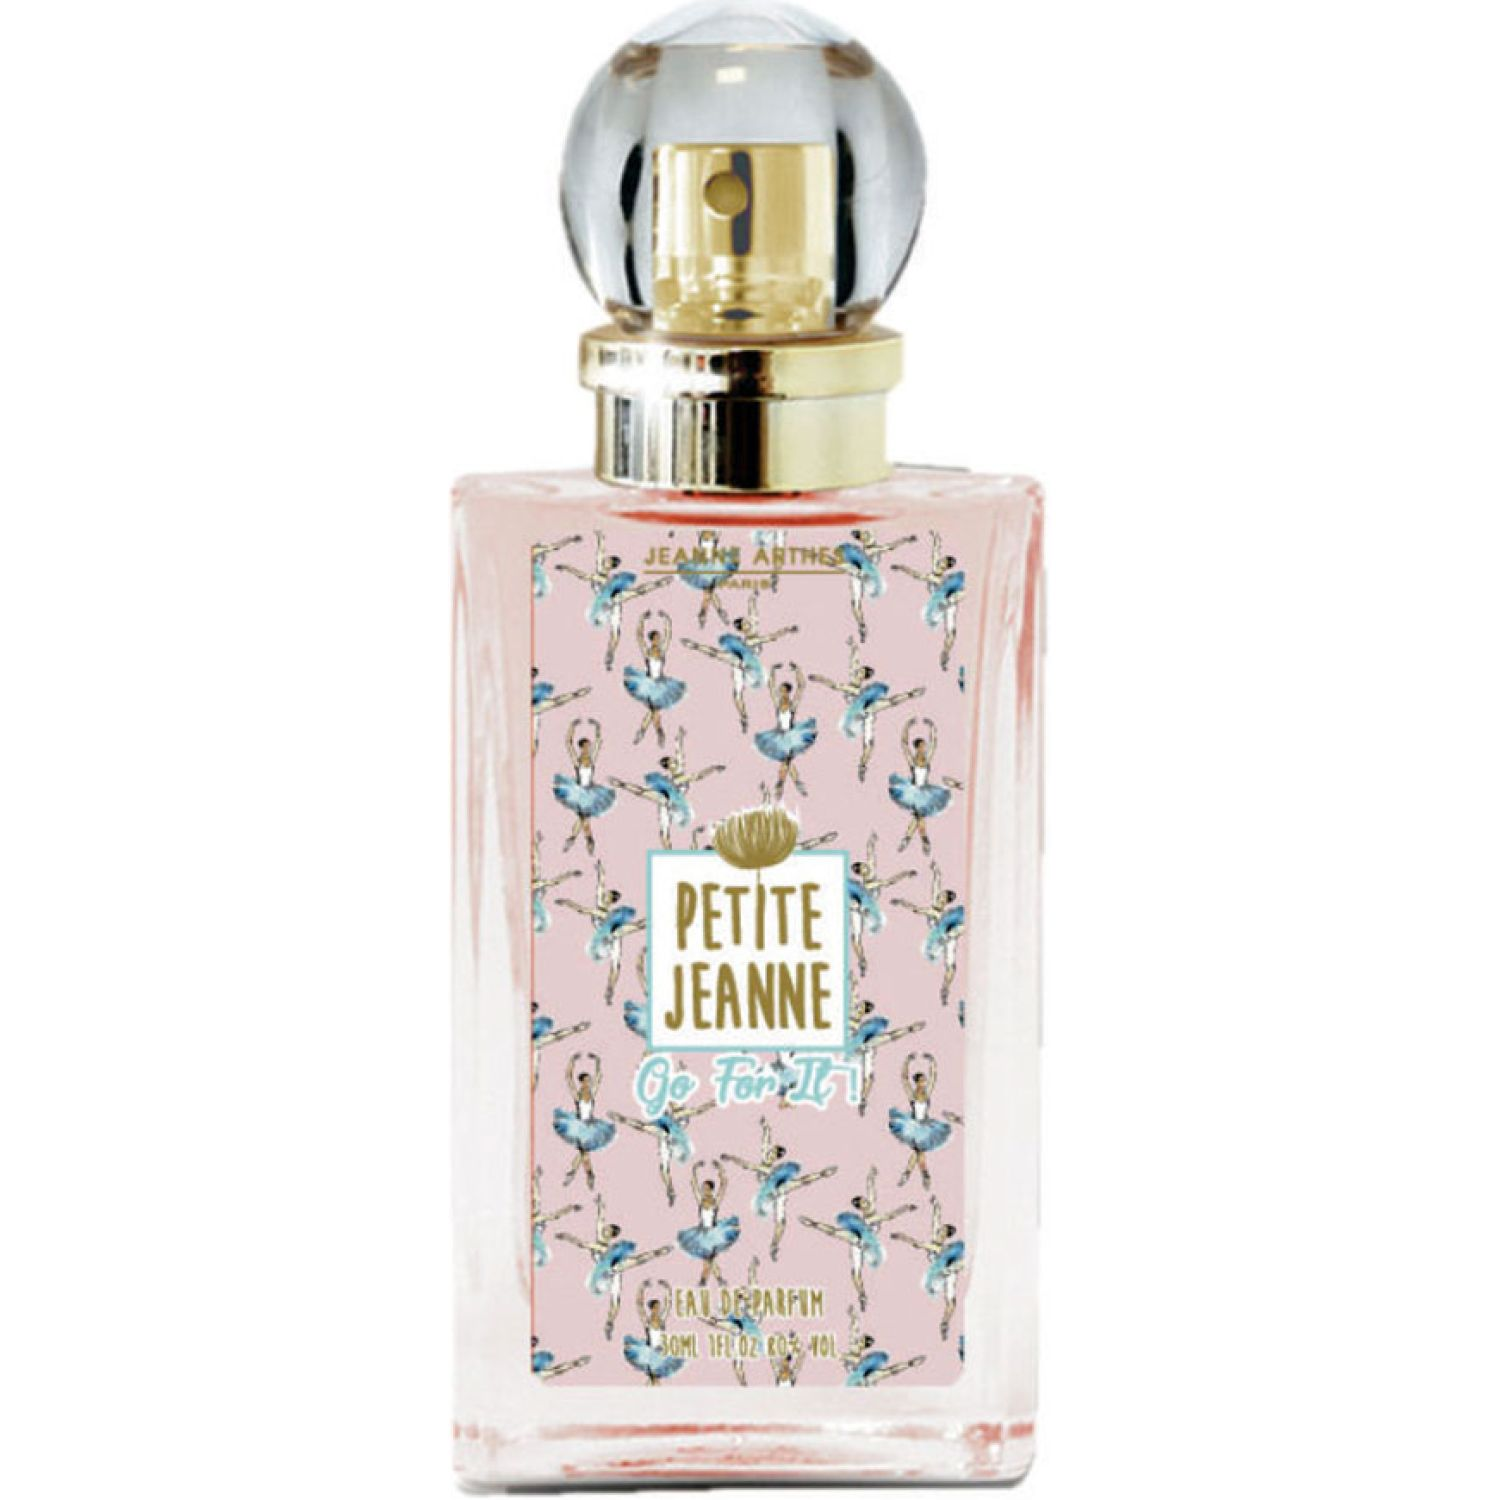 JEANNE ARTHES Petite Jeanne Go For It! Edp 30 Ml Varios Colonia